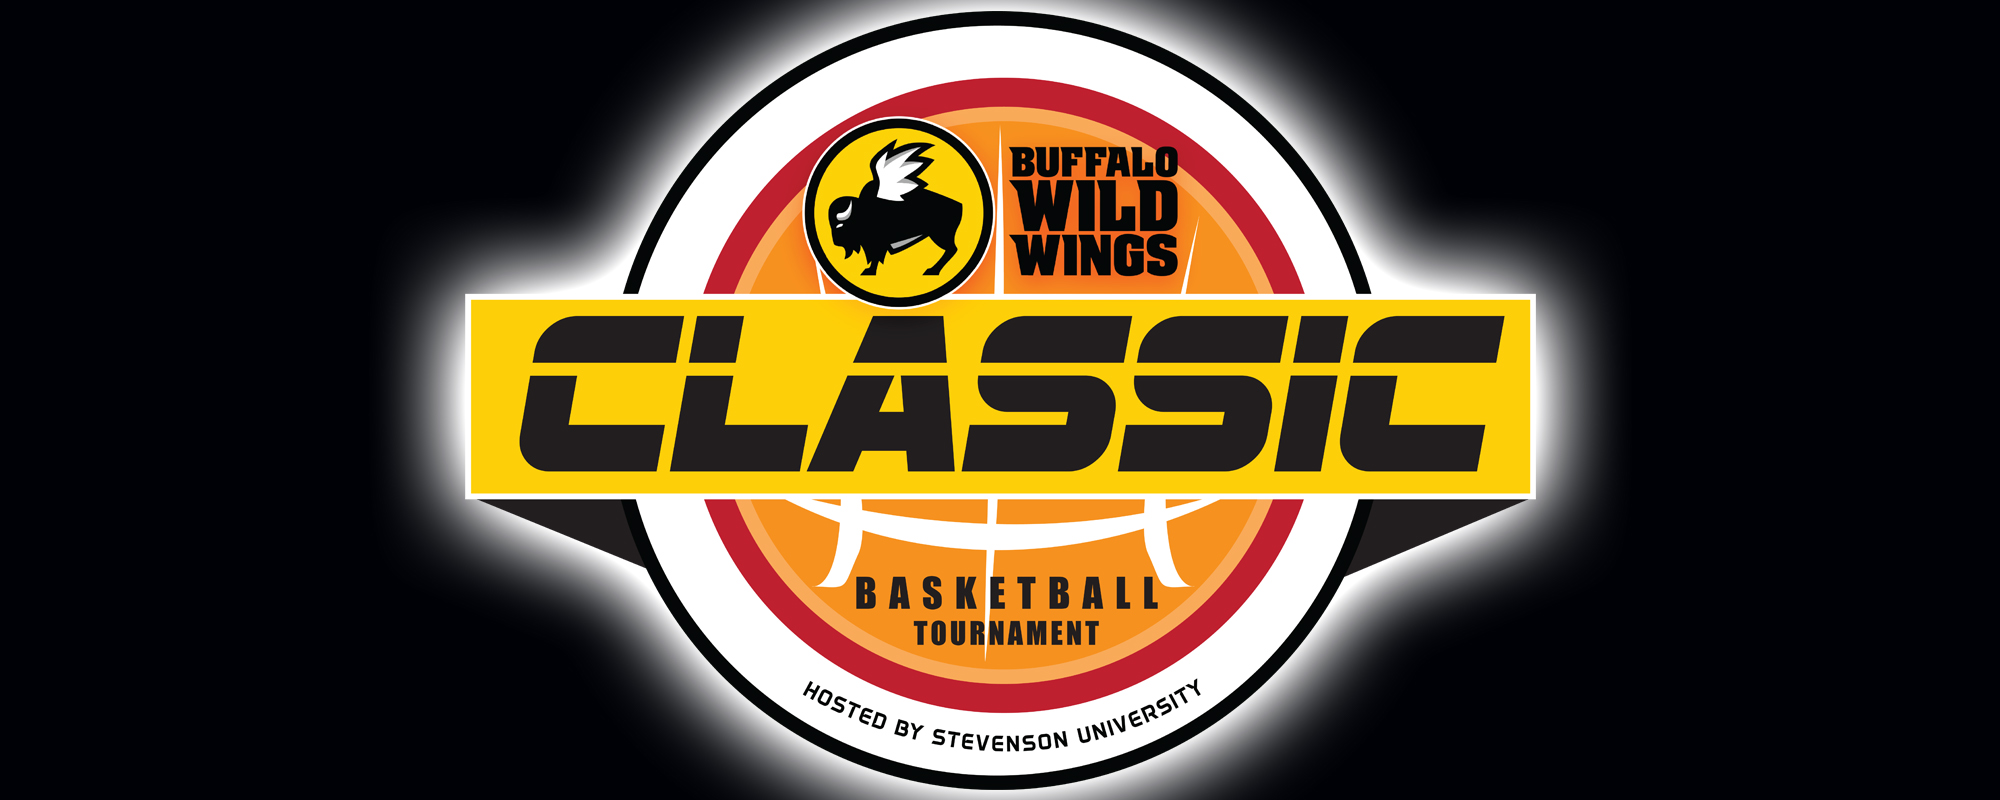 Annual Buffalo Wild Wings Classic Set For This Weekend